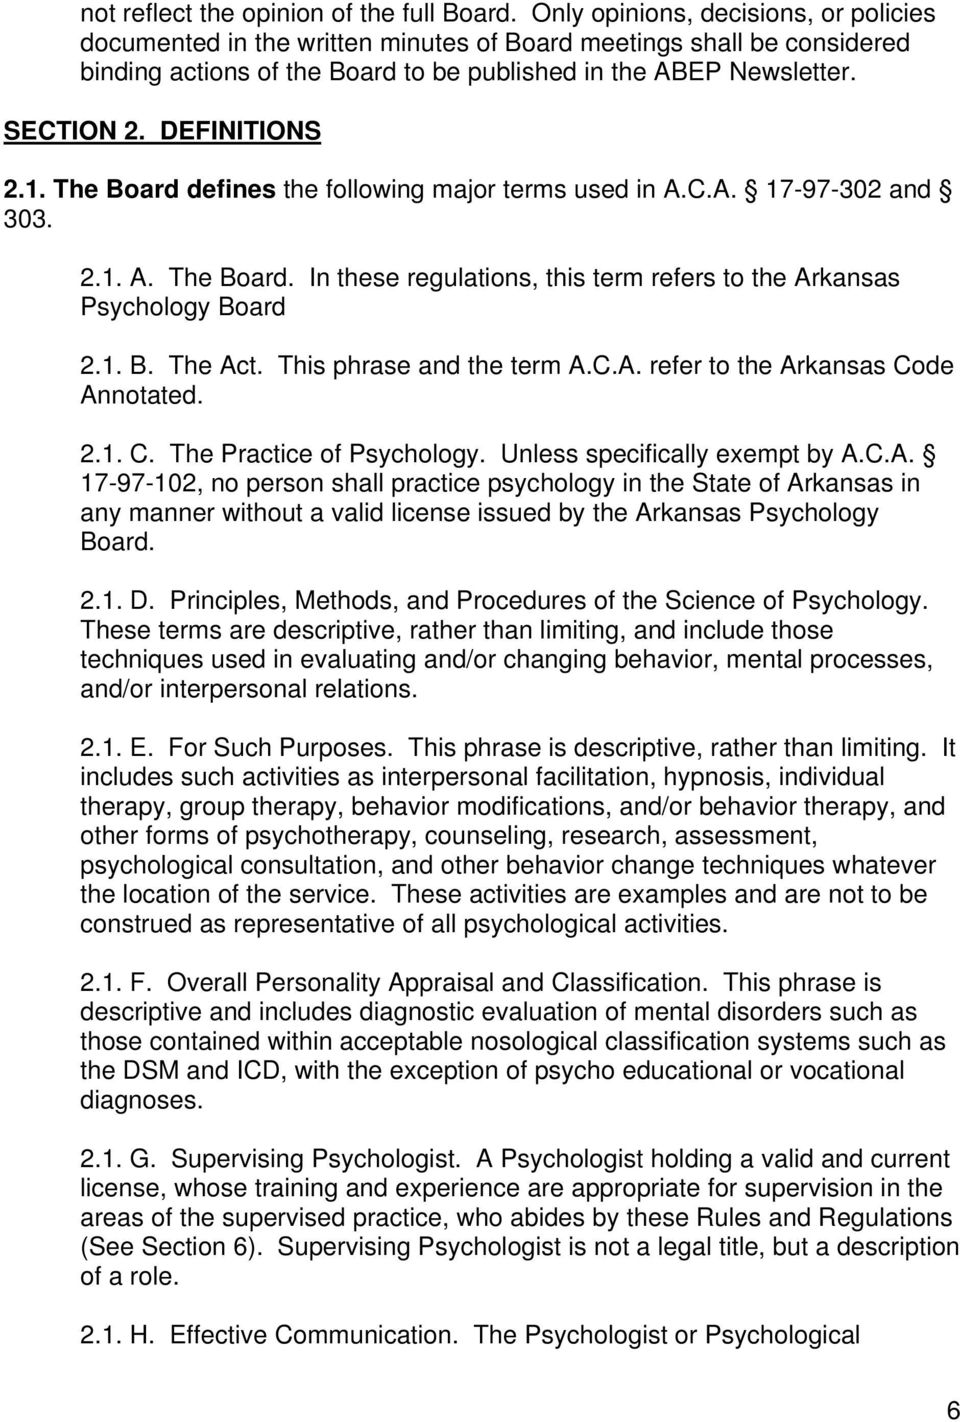 DEFINITIONS 2.1. The Board defines the following major terms used in A.C.A. 17-97-302 and 303. 2.1. A. The Board. In these regulations, this term refers to the Arkansas Psychology Board 2.1. B. The Act.